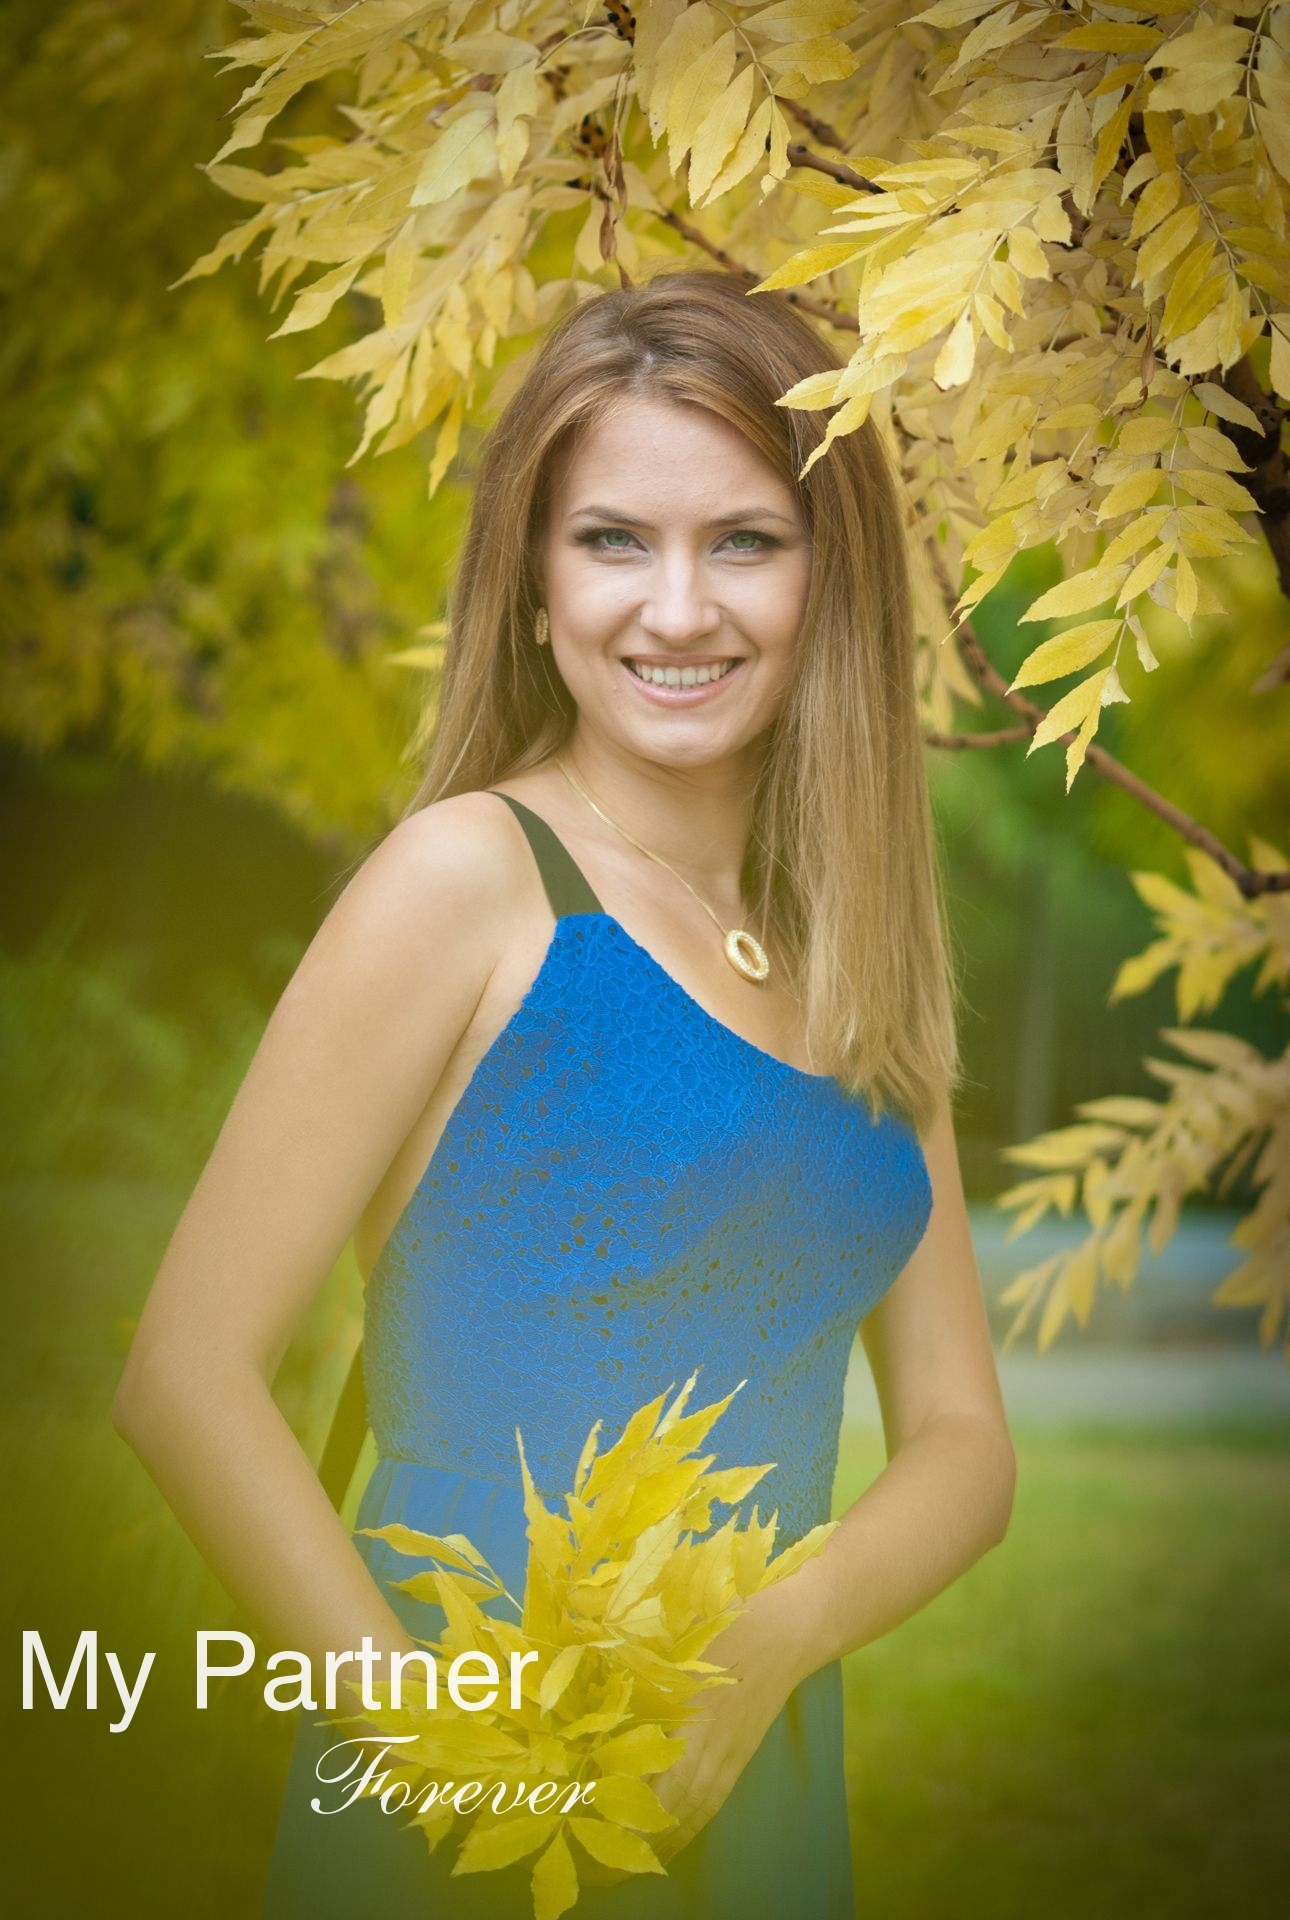 Dating Site to Meet Pretty Ukrainian Woman Elena from Zaporozhye, Ukraine